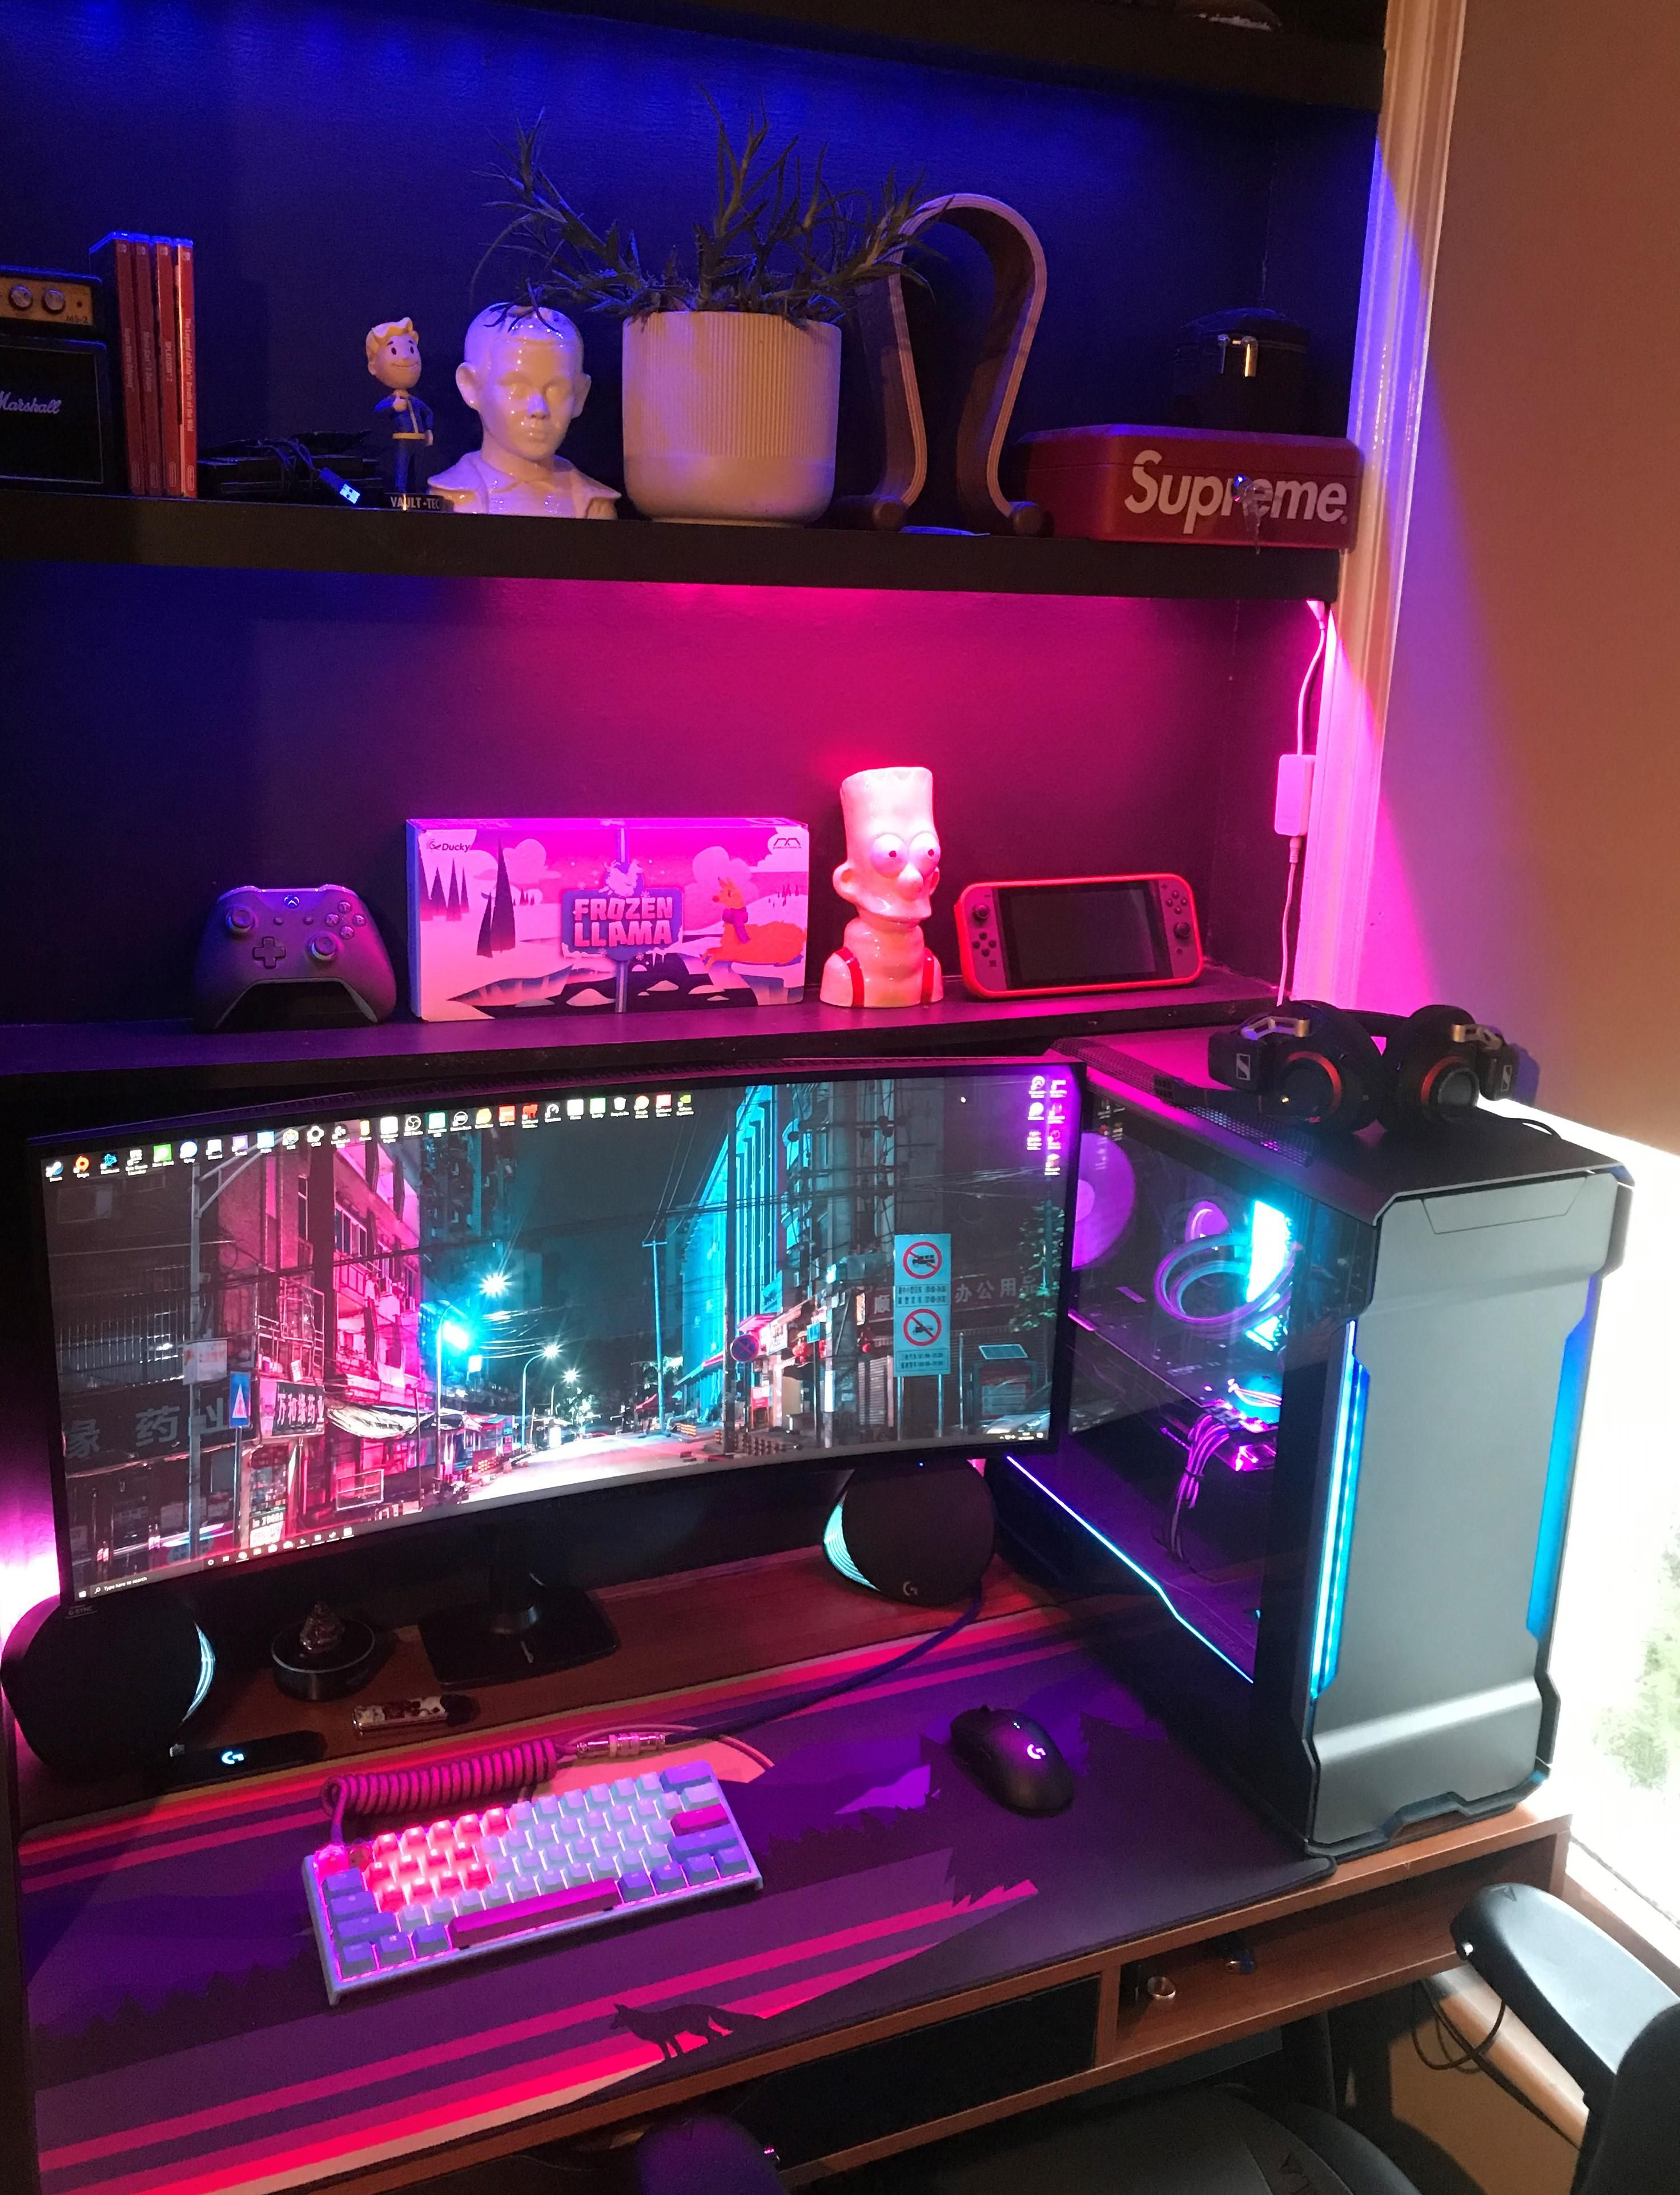 Pin by Minimalspirations on Desk Setups in 2020 Gaming